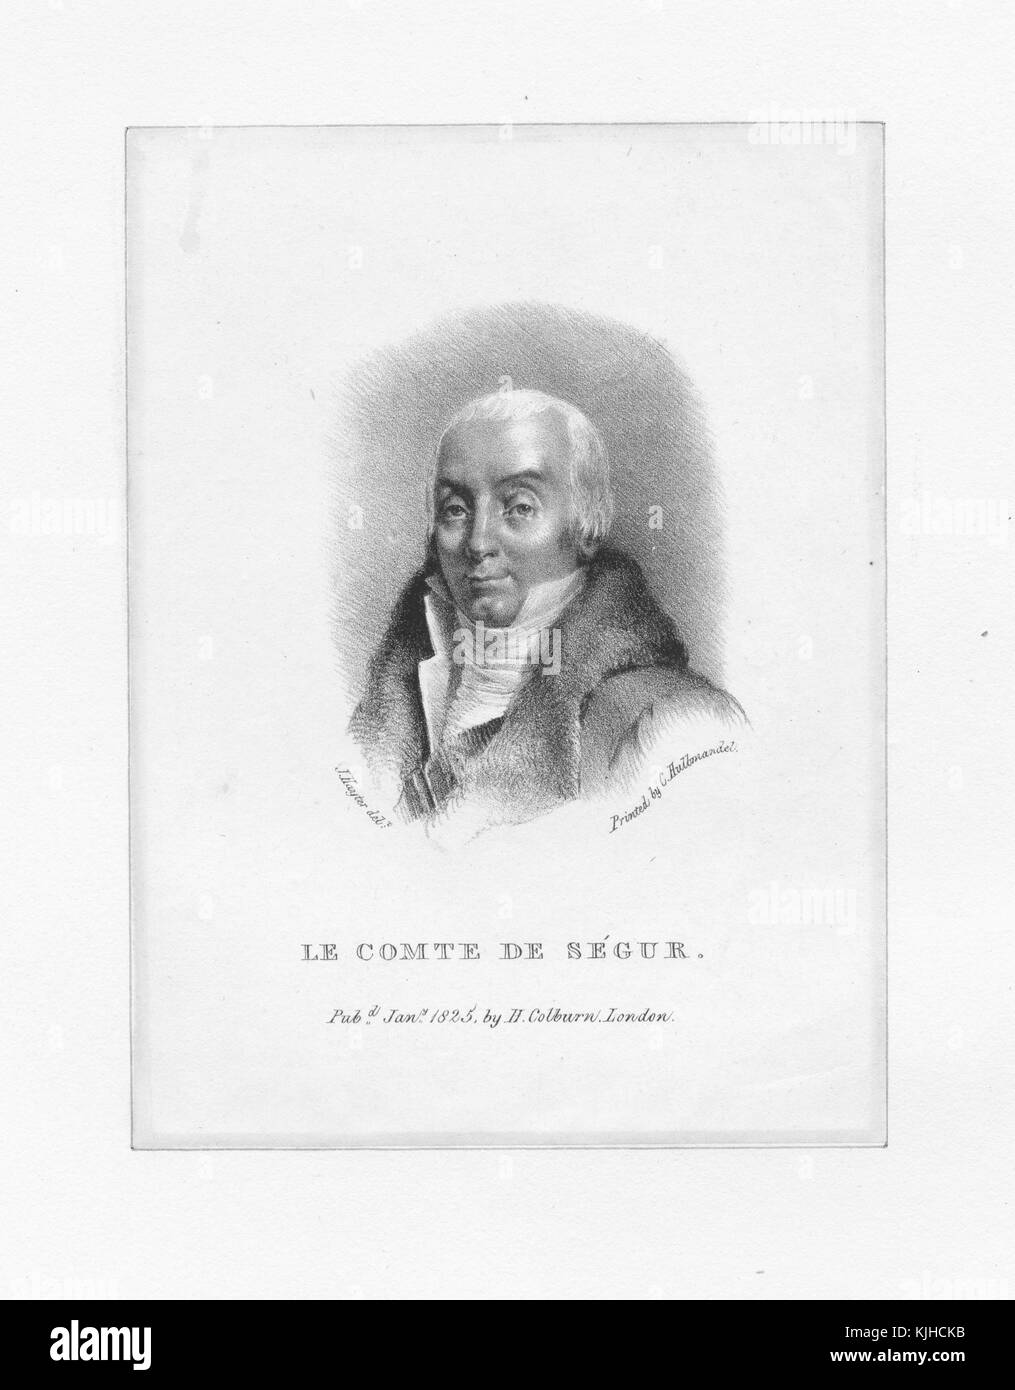 A etching from a portrait of Louis Philippe, comte de Segur, he was a French soldier and politician, he served in - Stock Image